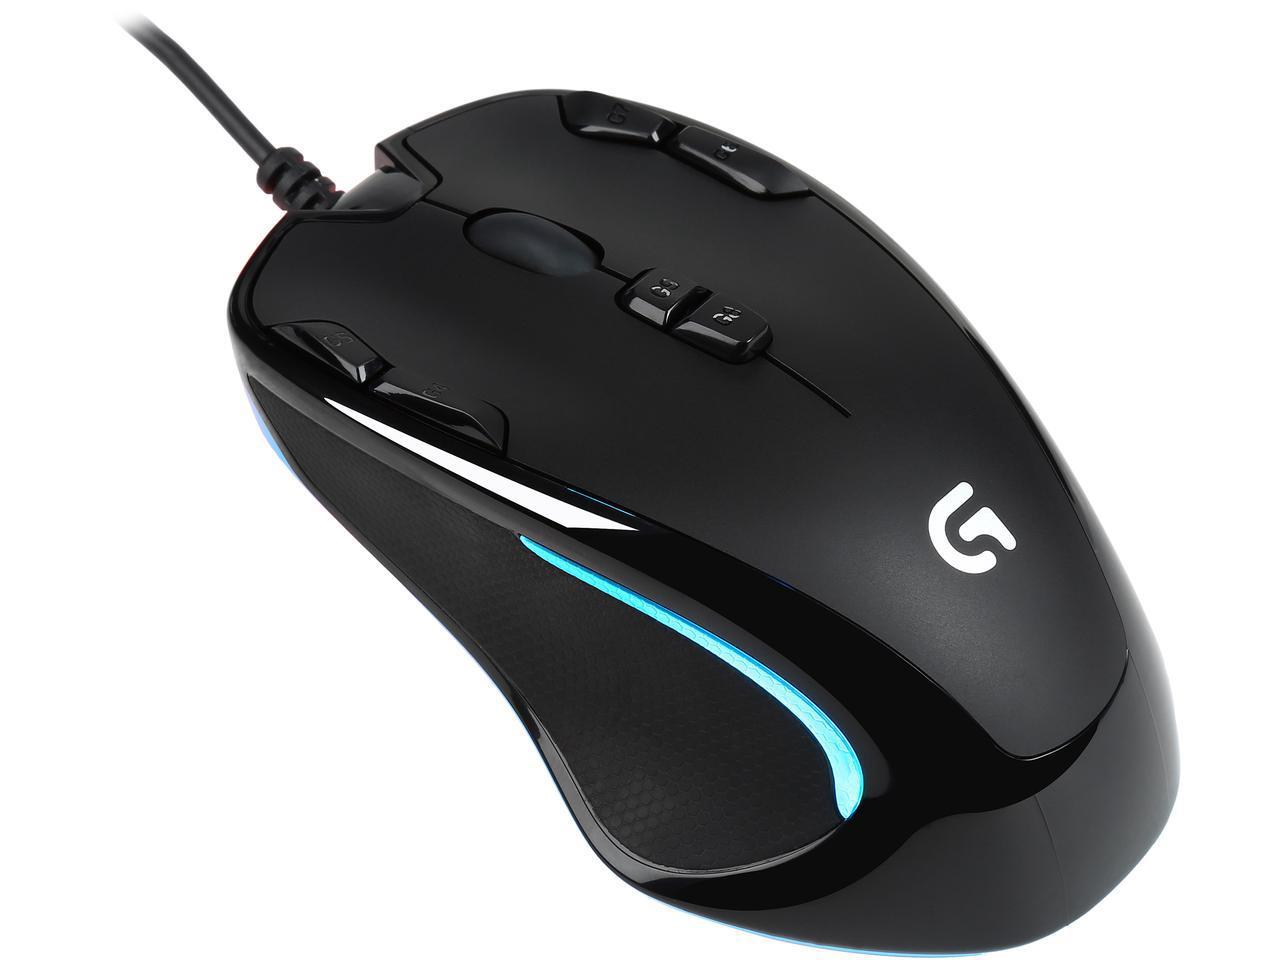 LOGTECH G300S OPTICAL GAMING MOUSE